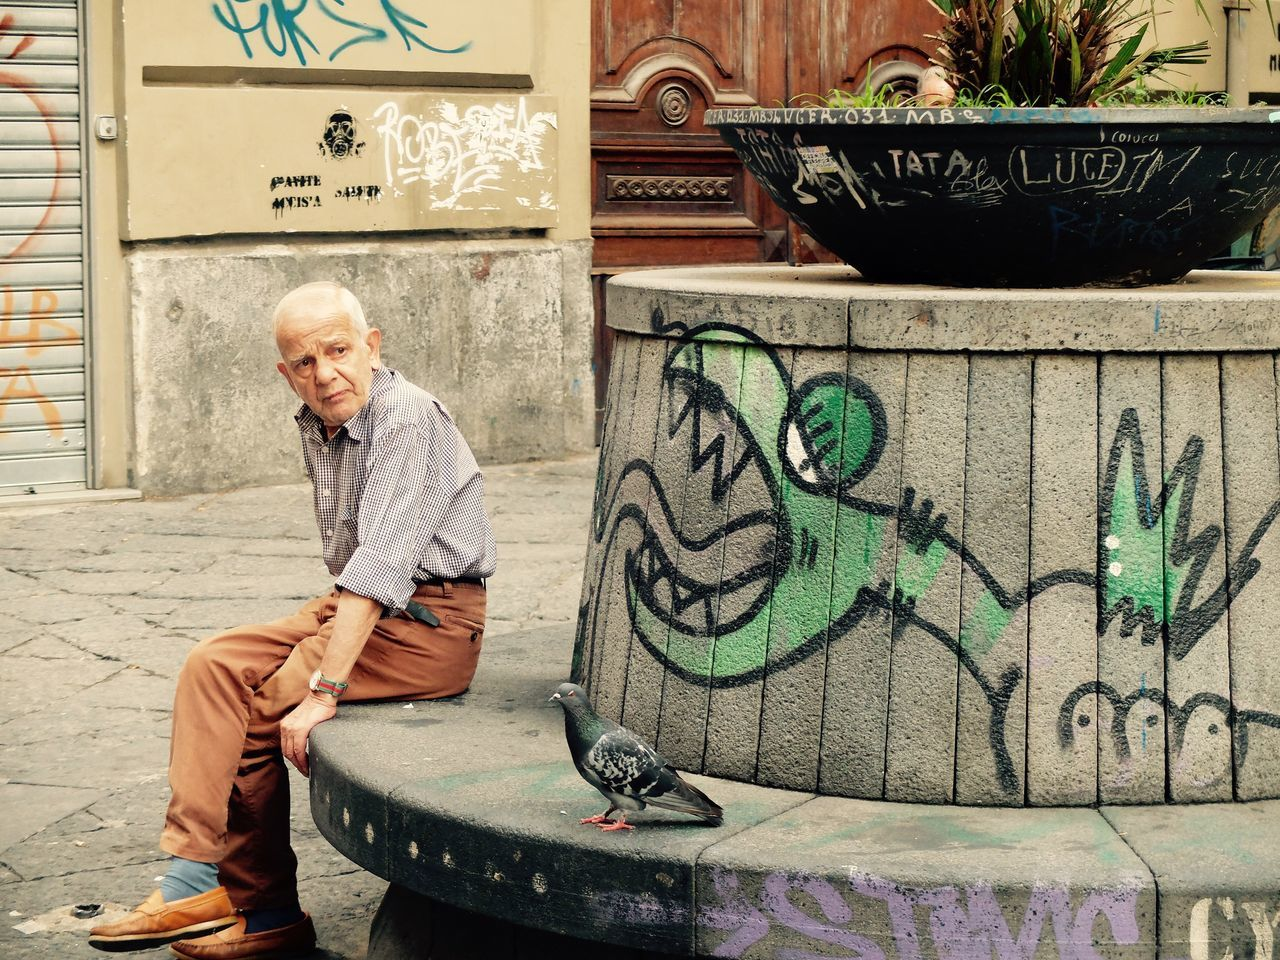 Art Art And Craft Bird Birds Communication Creativity Cultures Dragon Graffiti Grandpa Human Representation Italia People People Watching Peoplephotography Street Art Text Urban UrbanART Wall